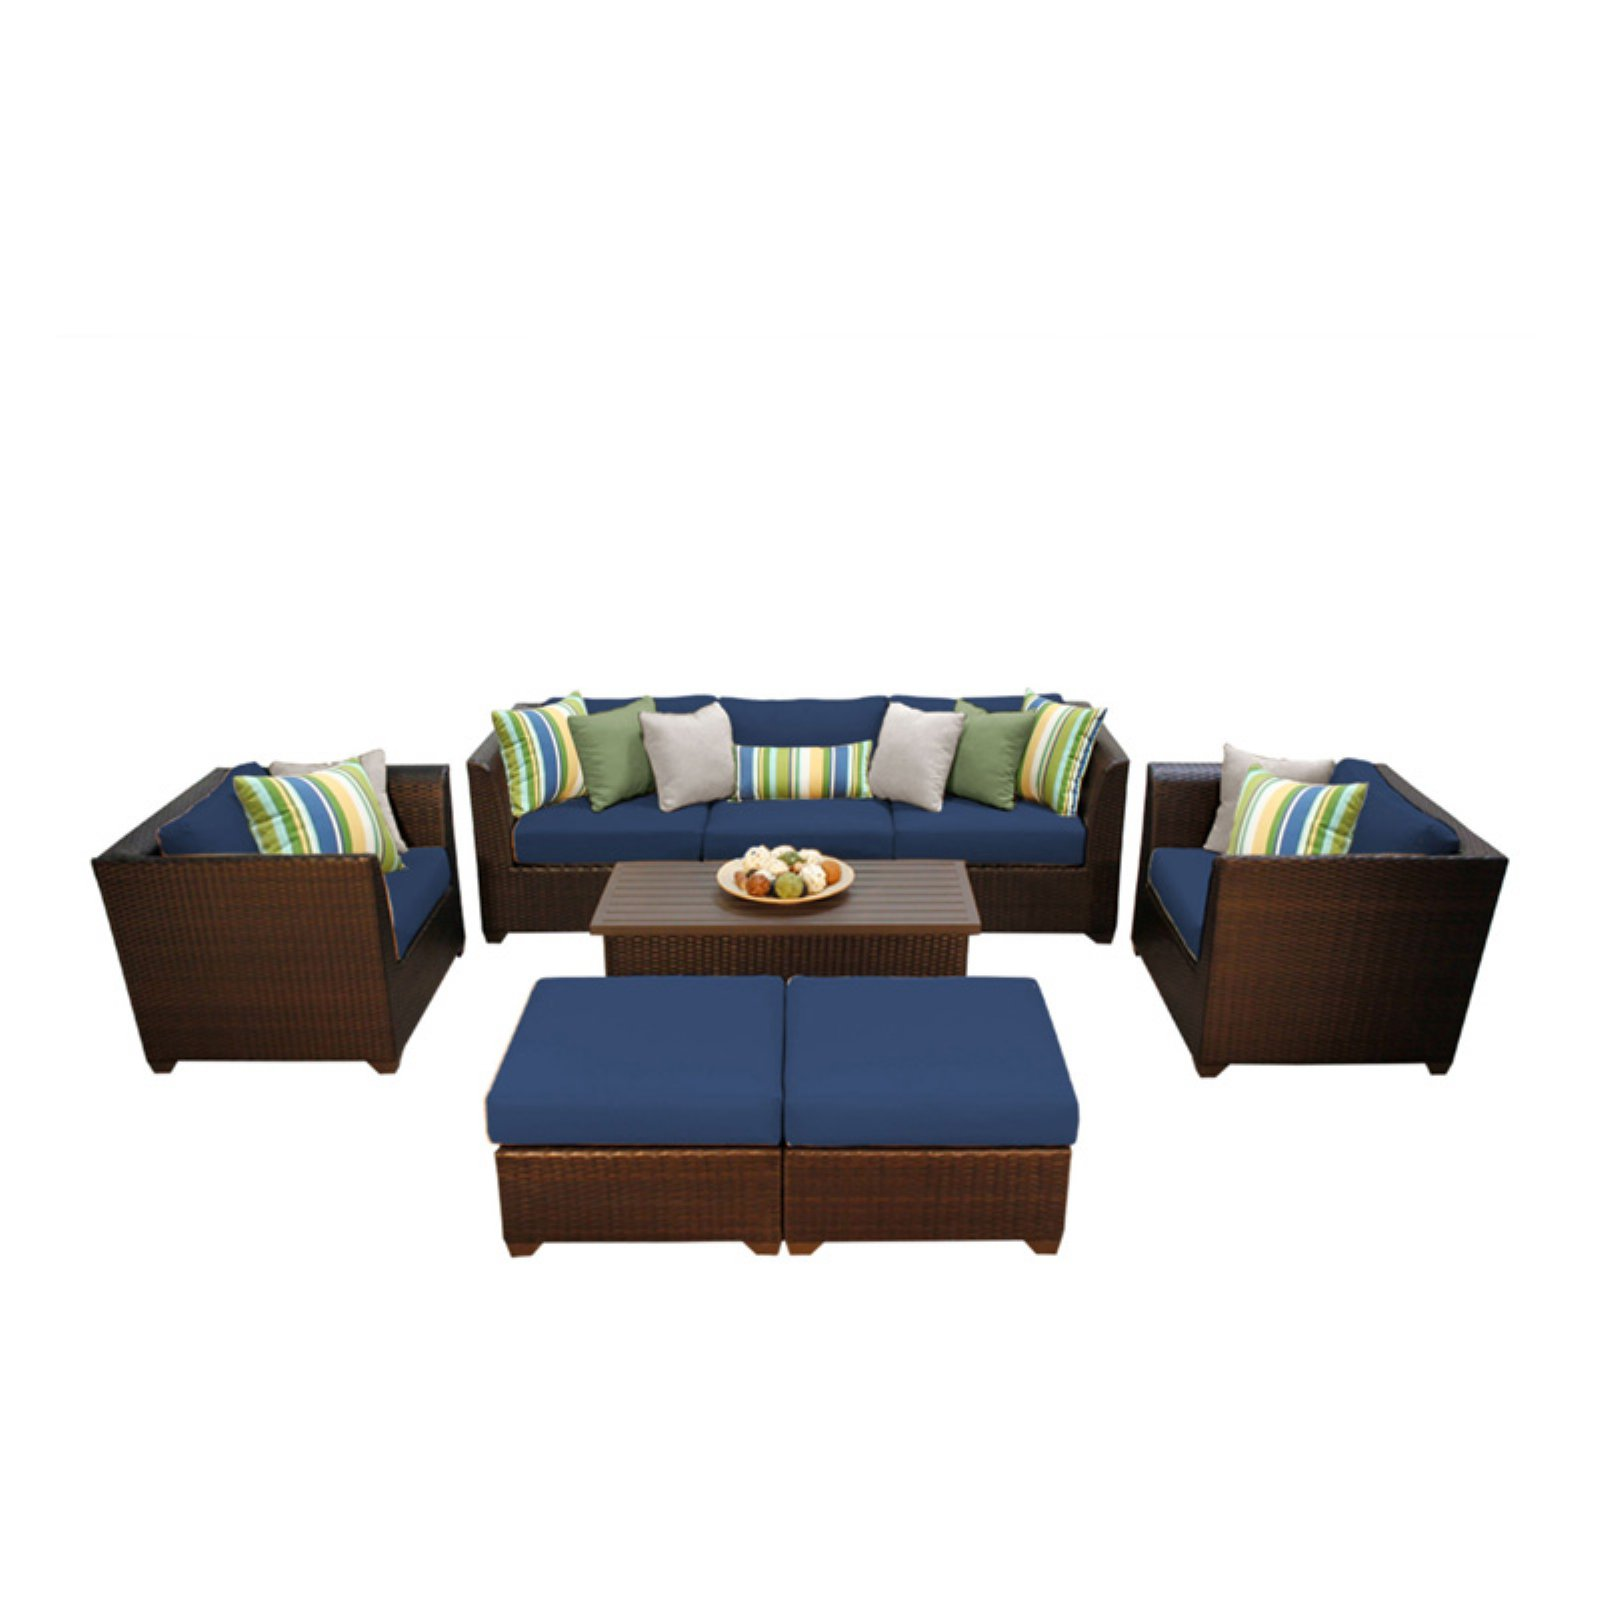 TK Classics Barbados Wicker 8 Piece Patio Conversation Set with Ottoman and 2 Sets of Cushion Covers